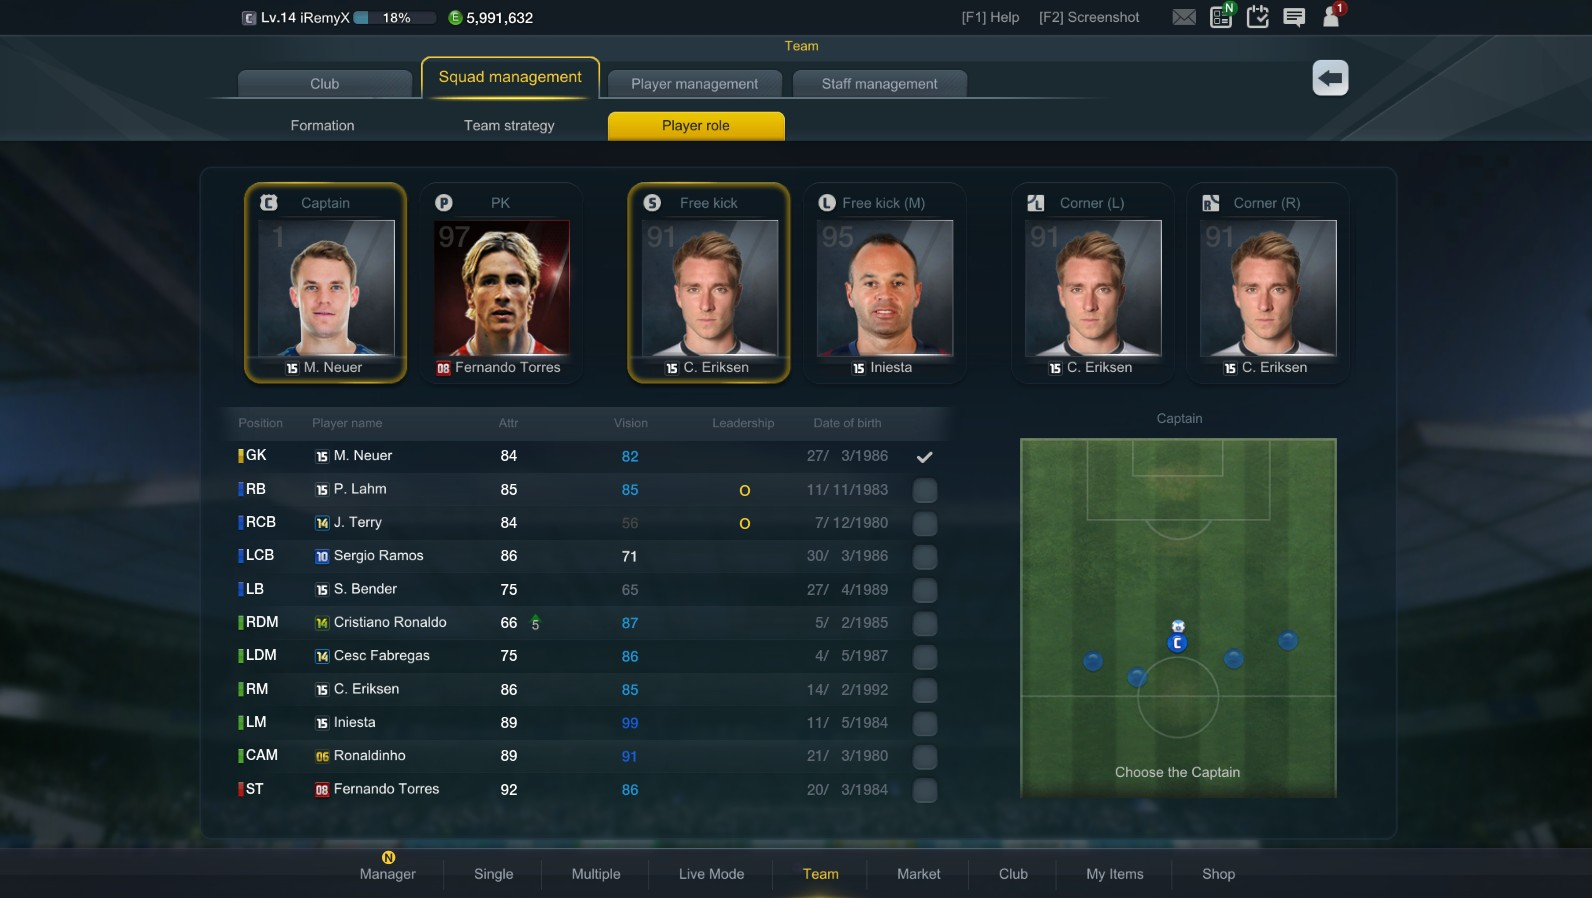 Choose your captain, players to take important penalties, free kicks and  corners. This is key in determining the nature of your team!